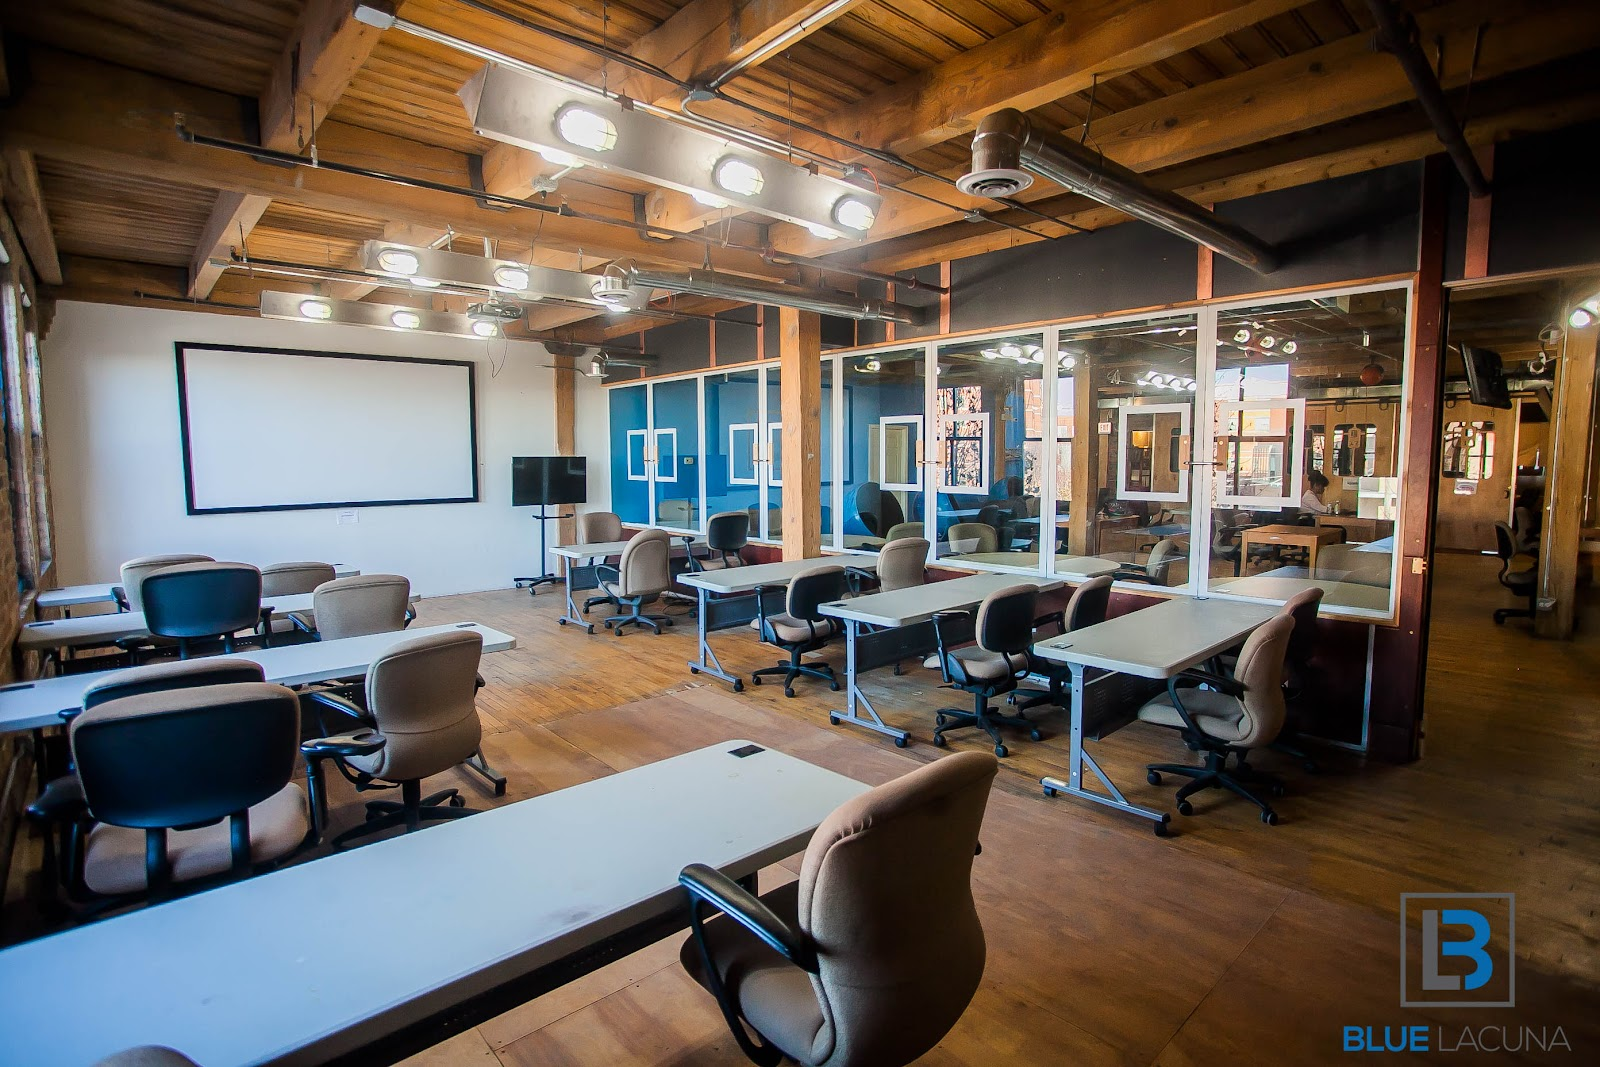 The Blue Lacuna Coworking Spaces in Chicago